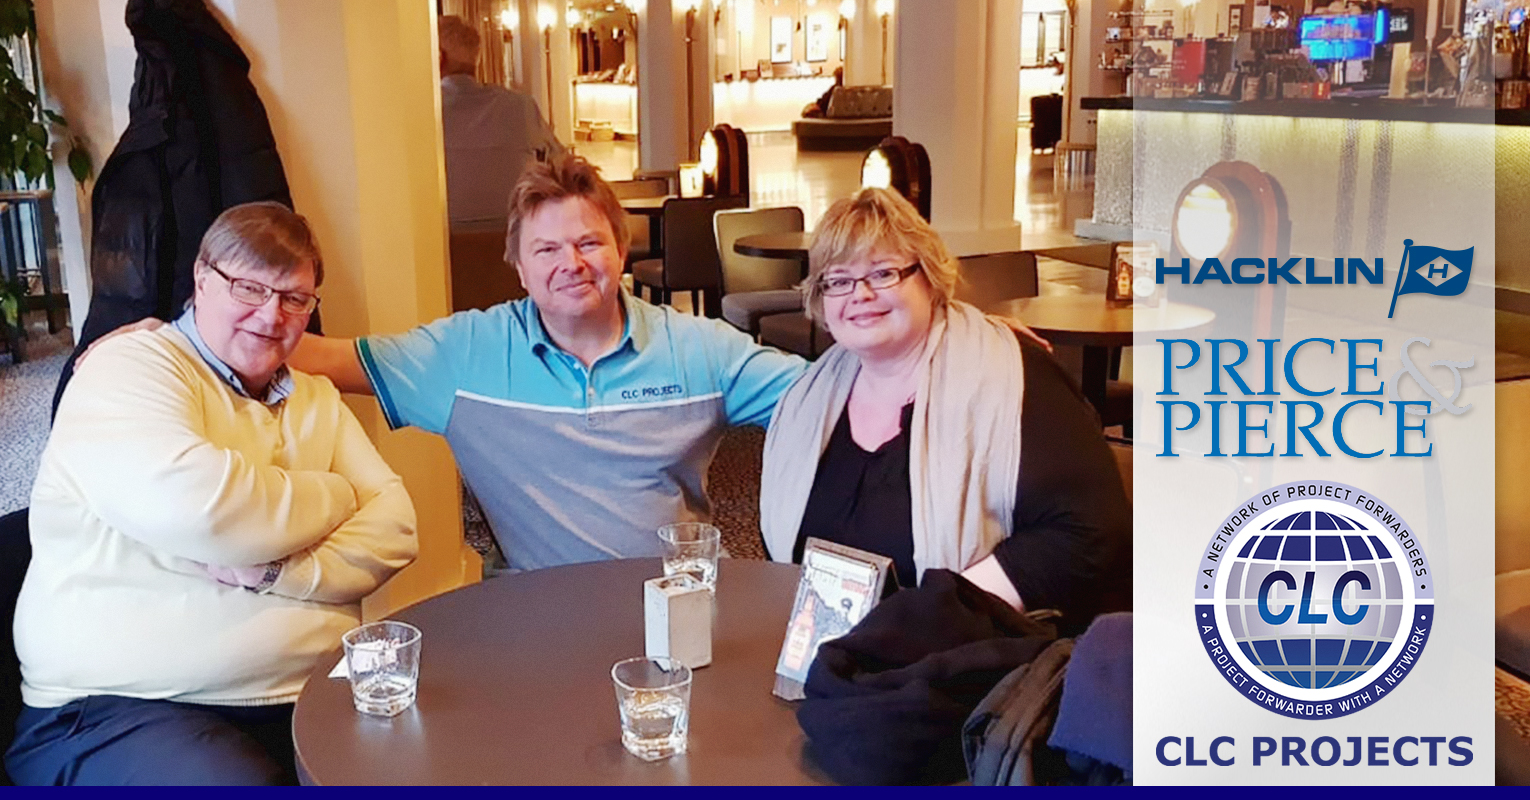 CLC Projects met with Hacklin Logistics and  Price & Pierce in Helsinki